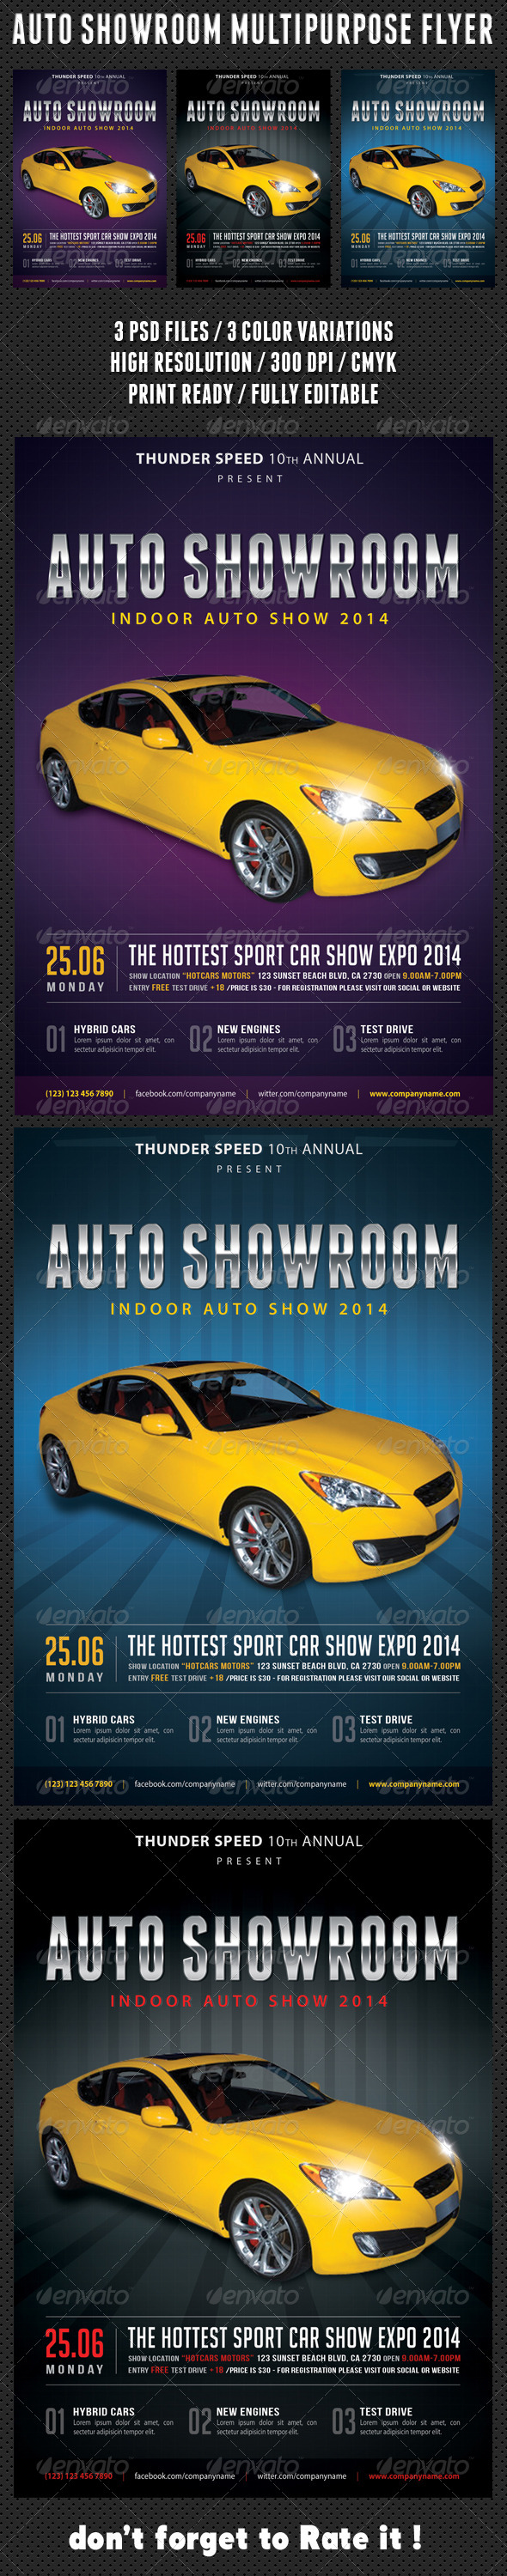 Auto Showroom Multipurpose Flyer 01 - Events Flyers